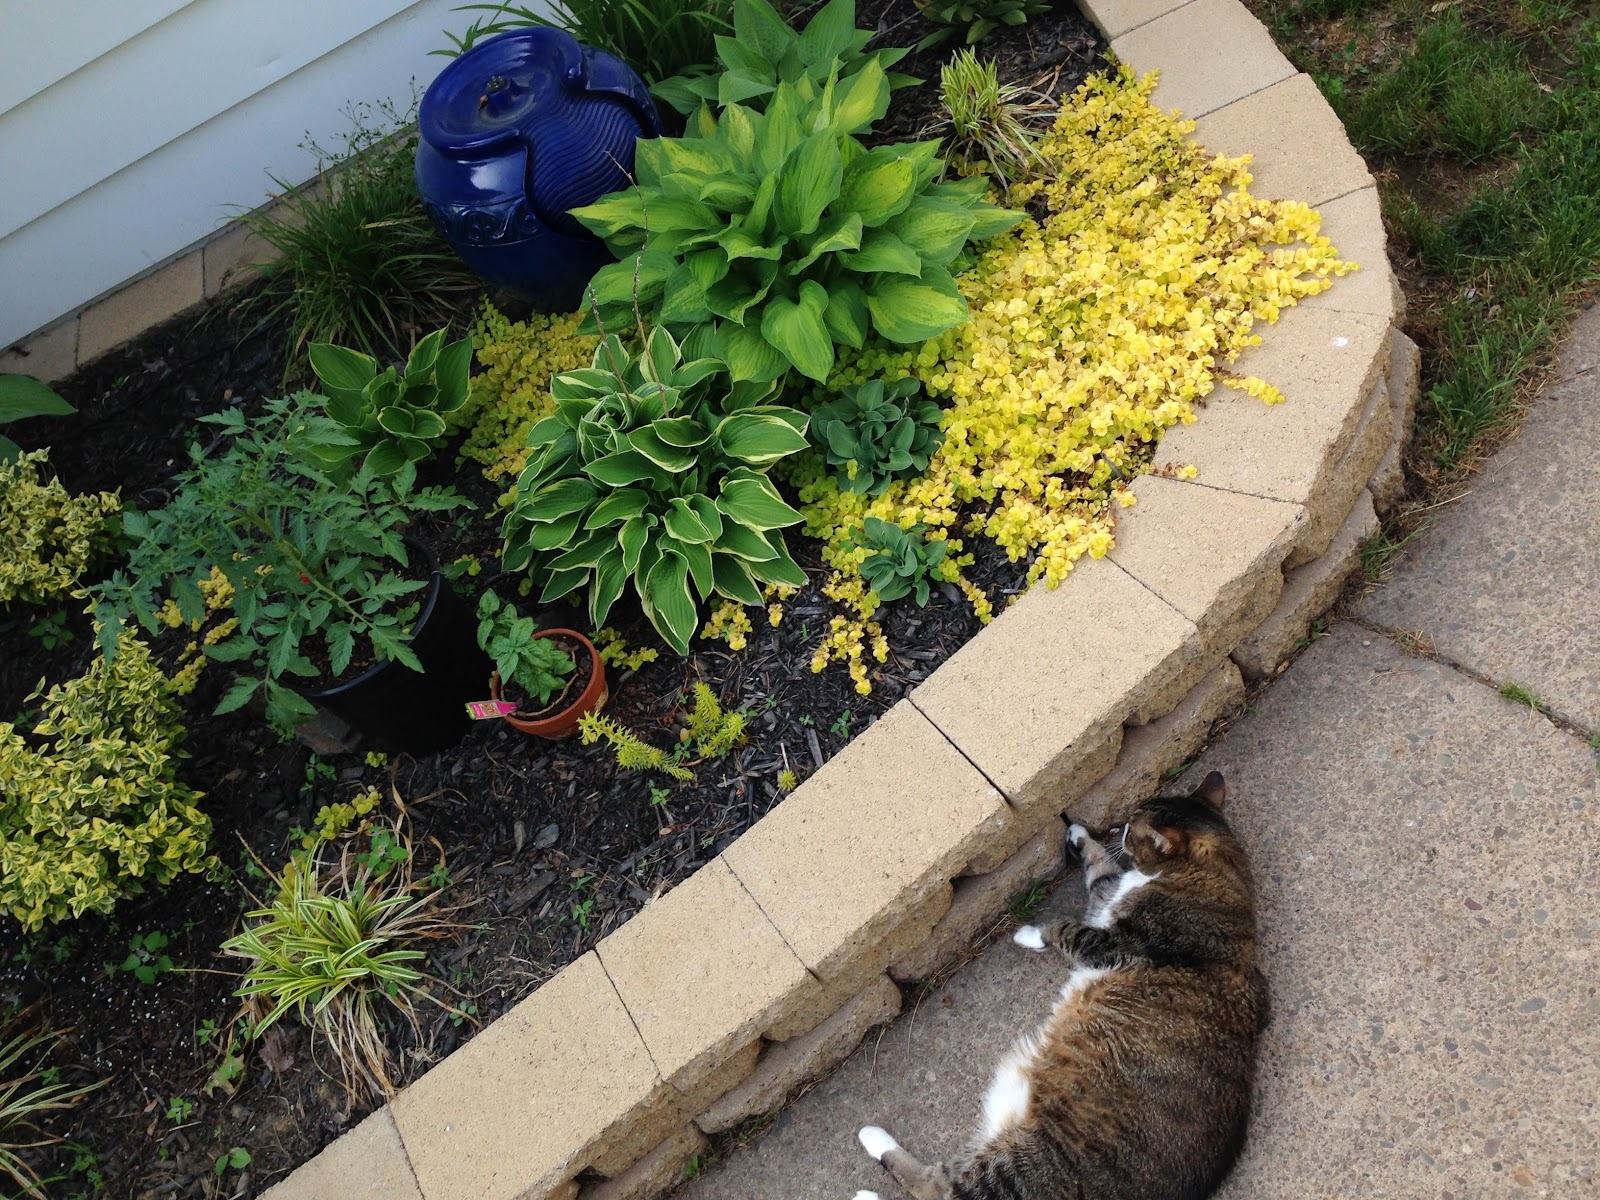 Quincy the cat chilling by the amazing growth in the back garden bed. L-R Euonymous, tomato plants, 4 varieties of hosta (the small one is blue mouse ears), and the groundcover is creeping jenny. There's also a couple grasses mixed in, but they are still small.